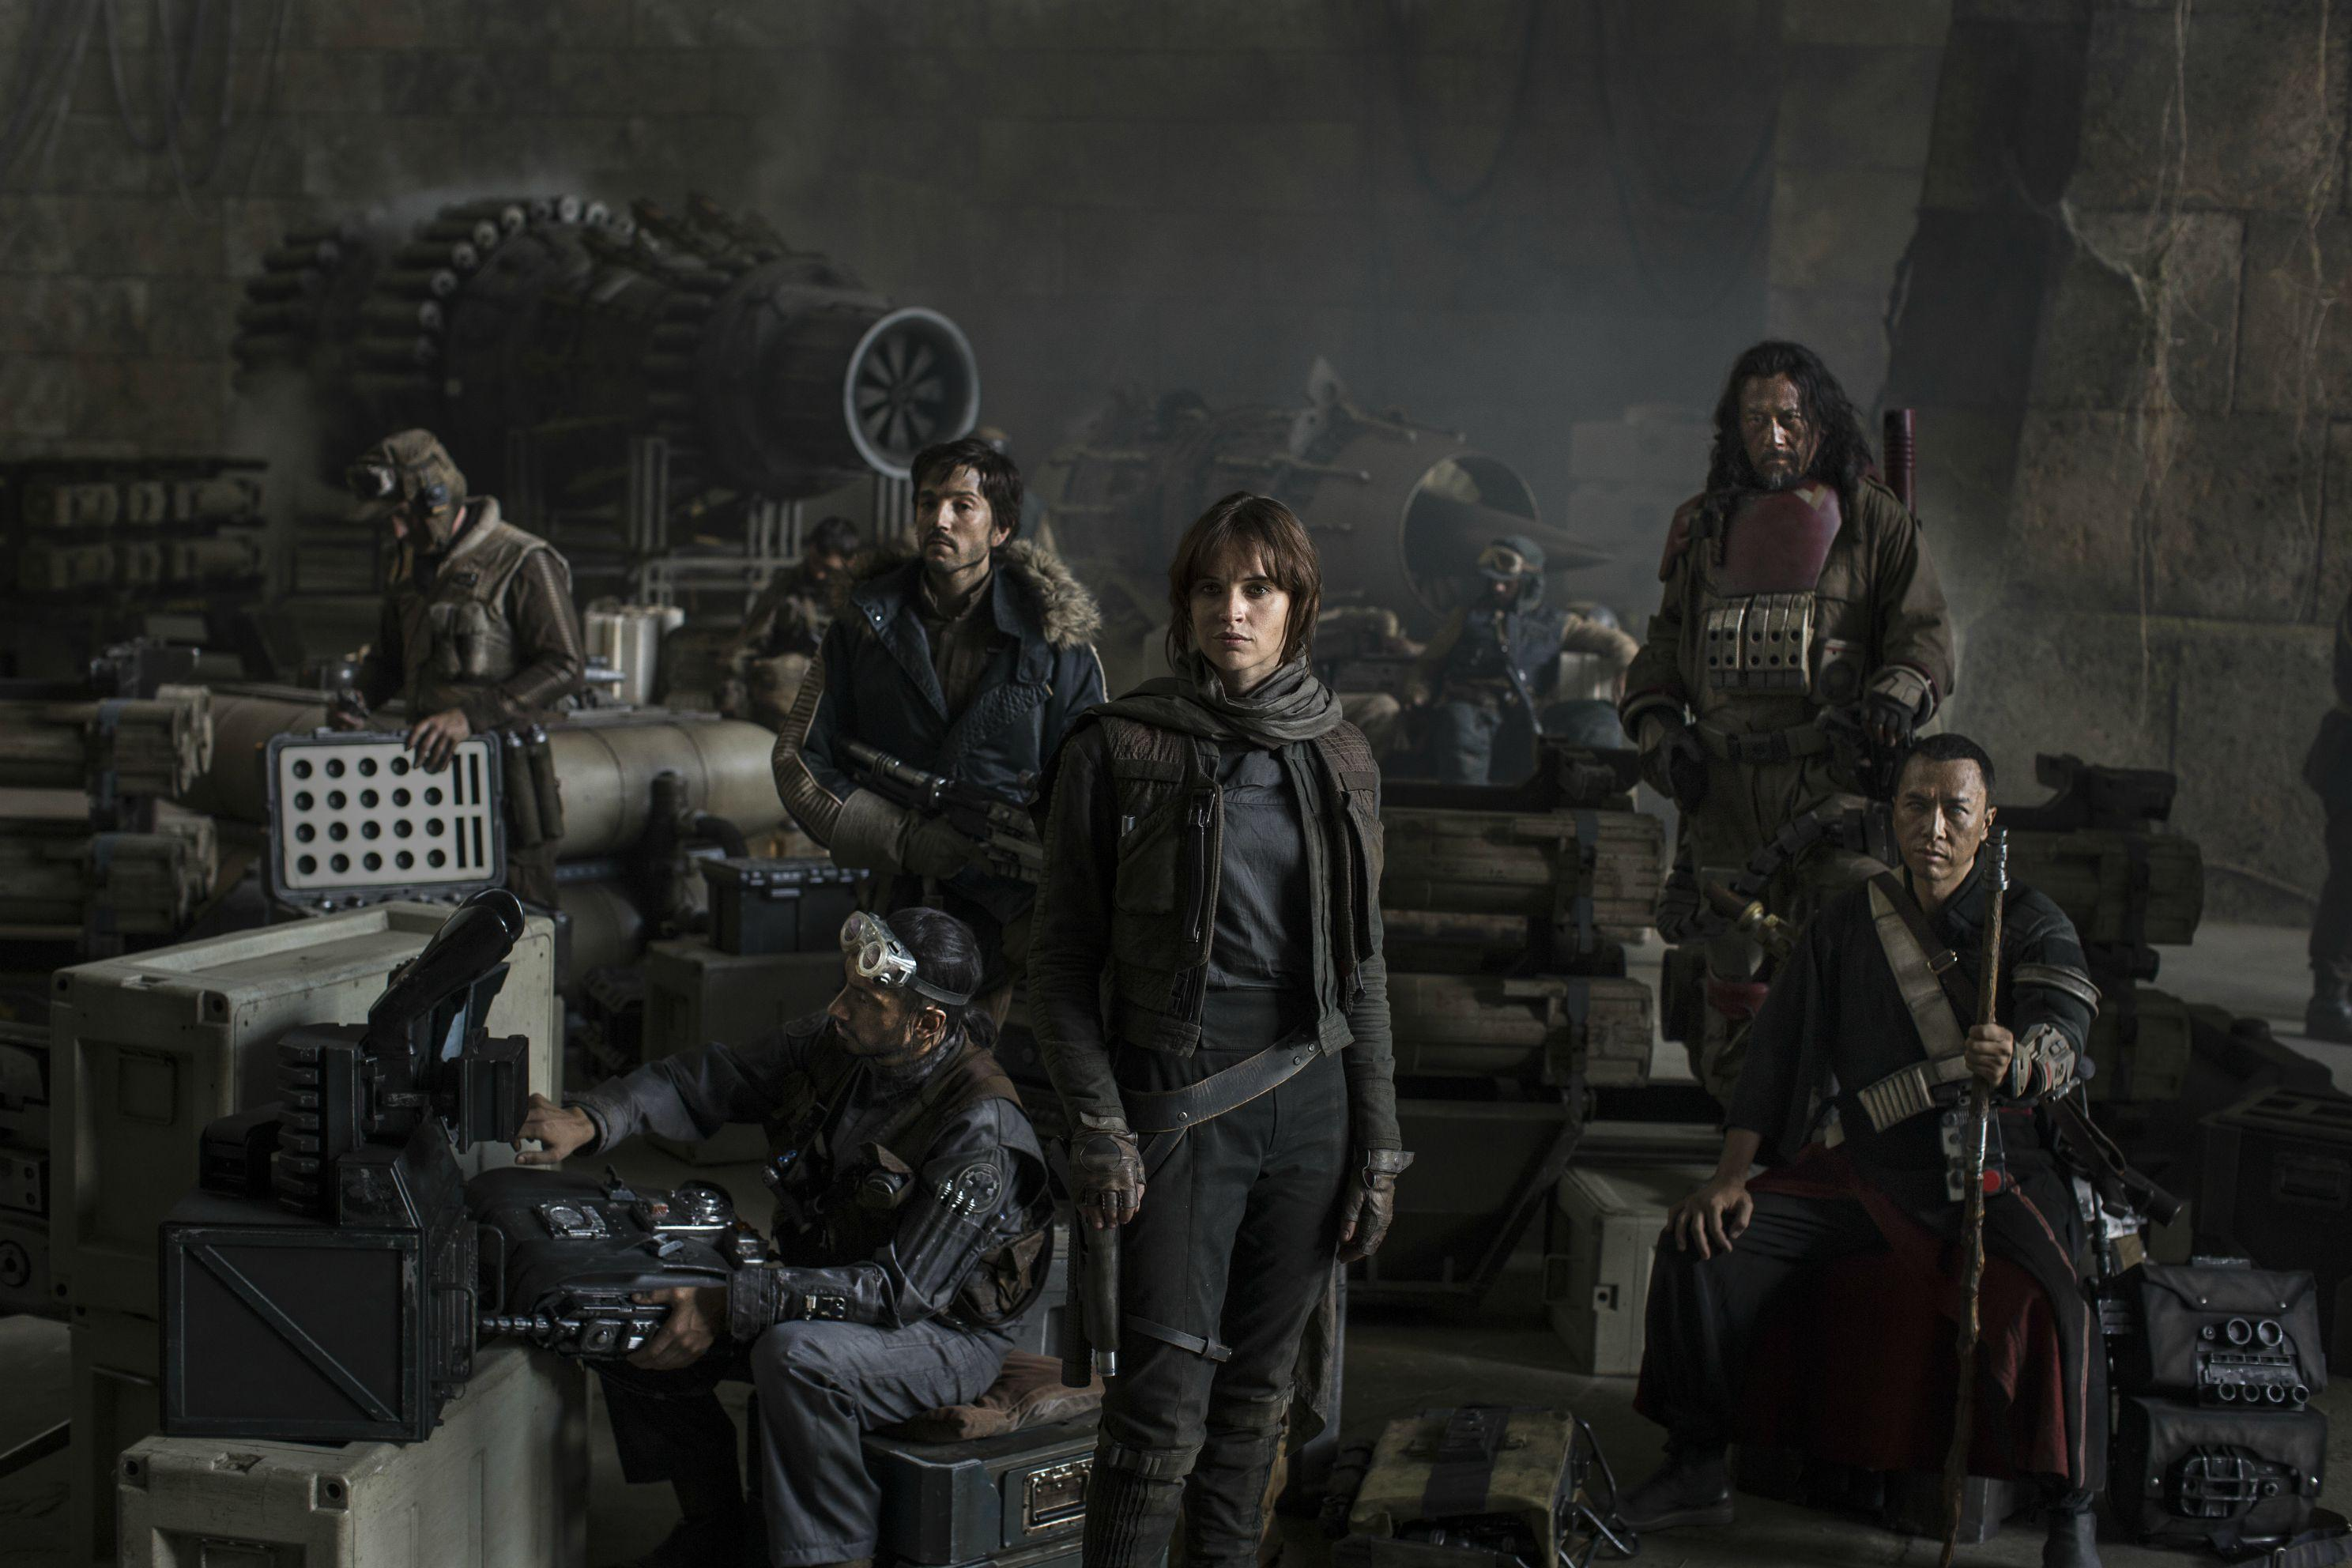 Rogue One Cast reveal!